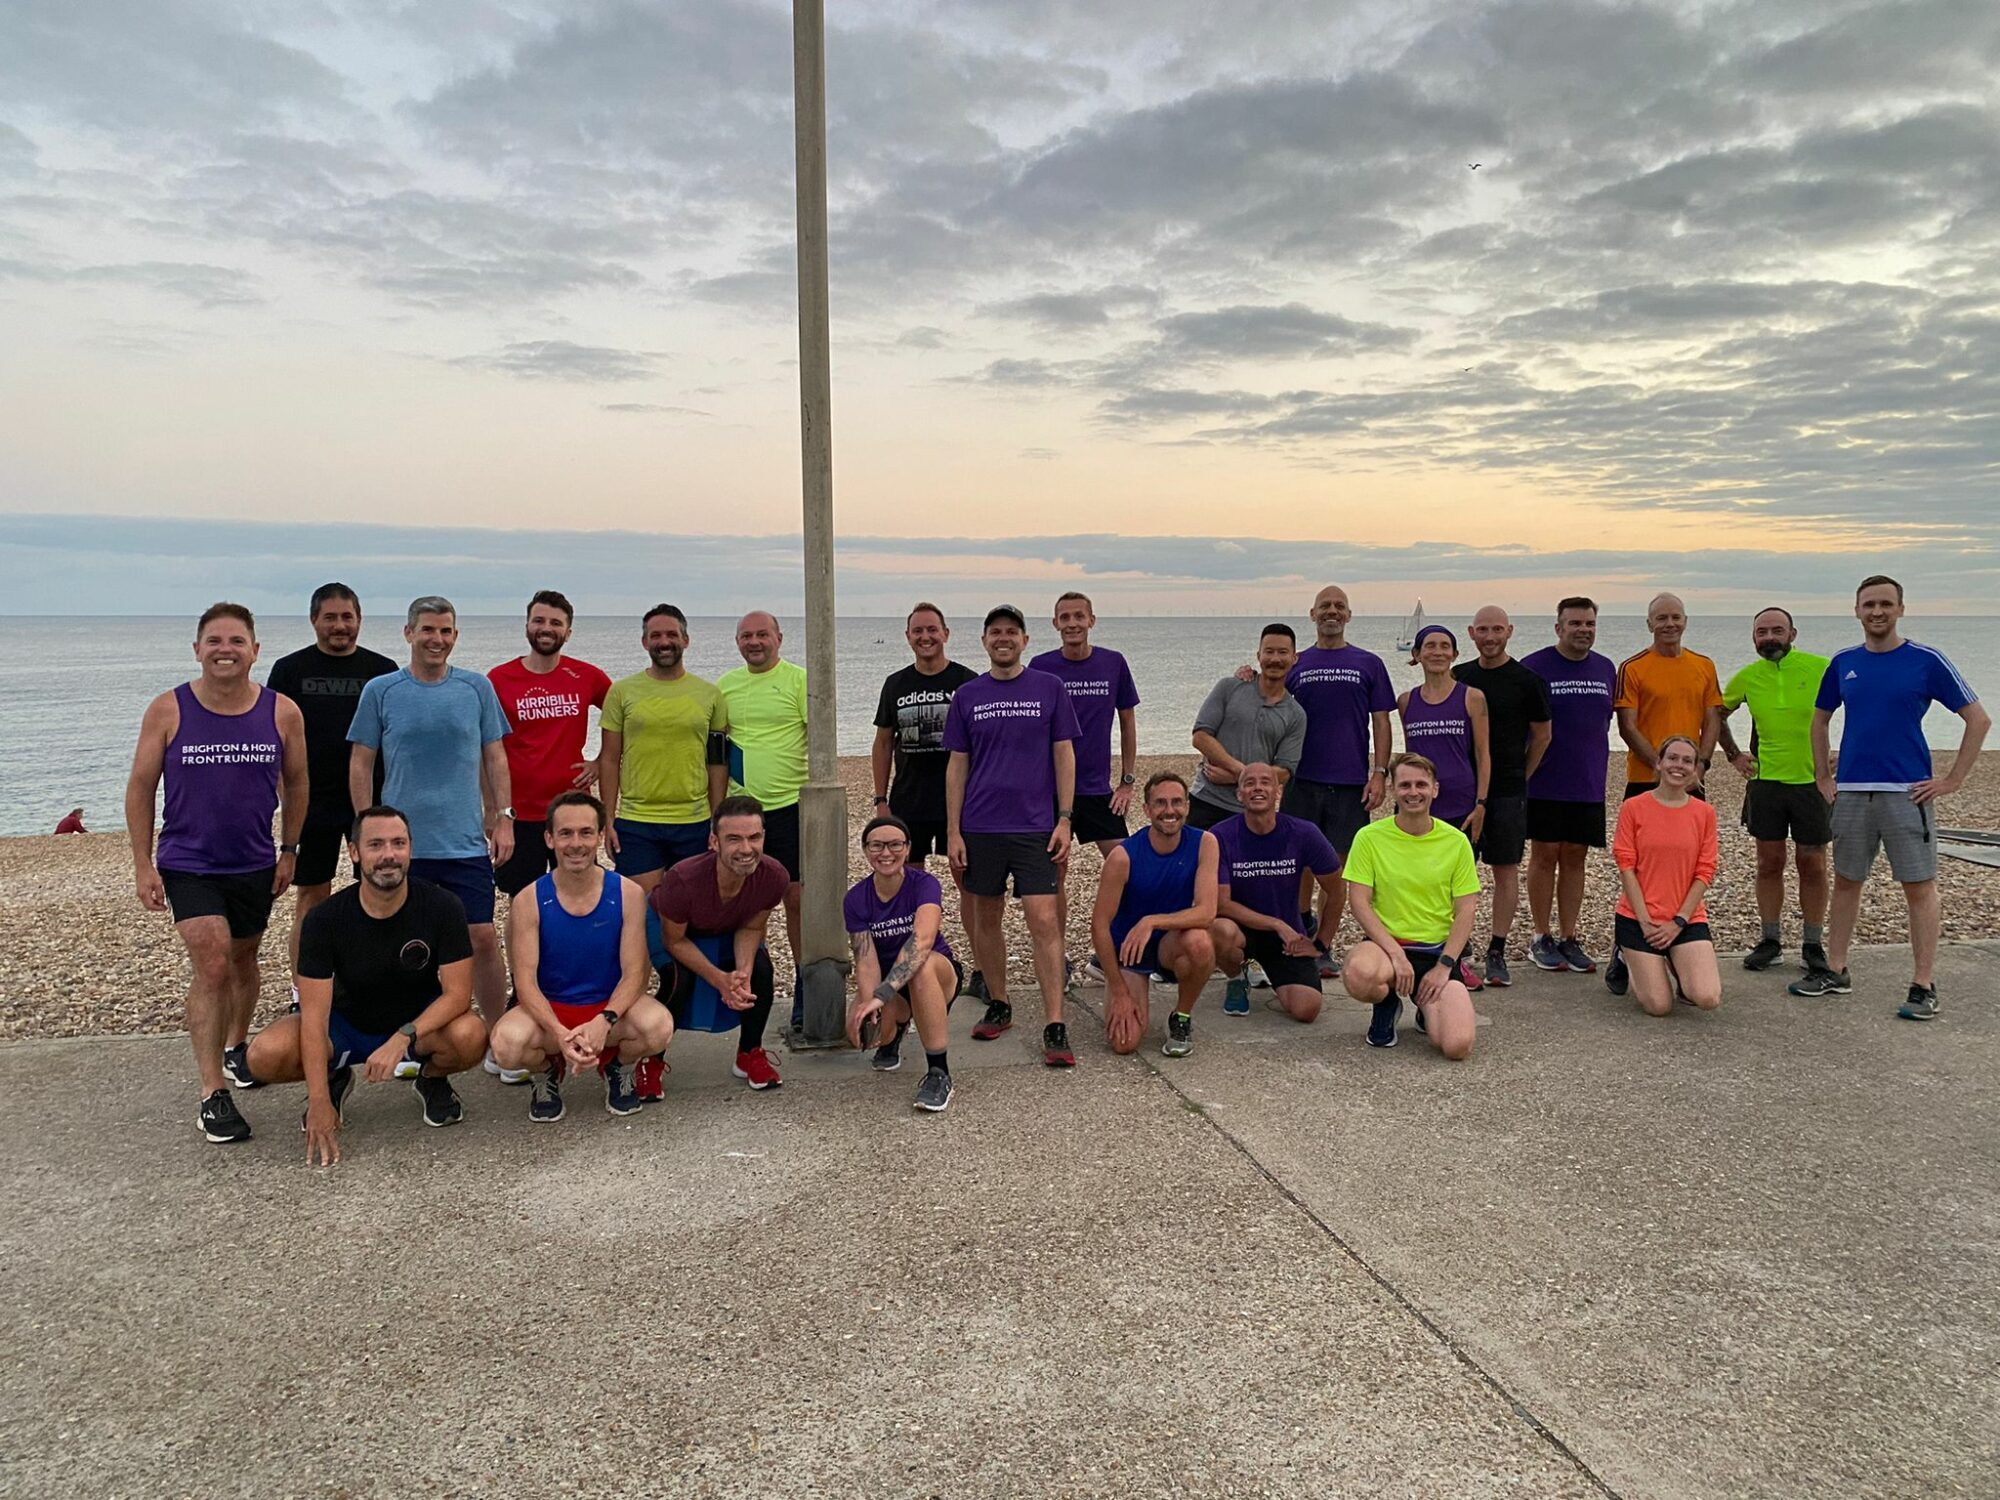 Brighton & Hove FrontRunners